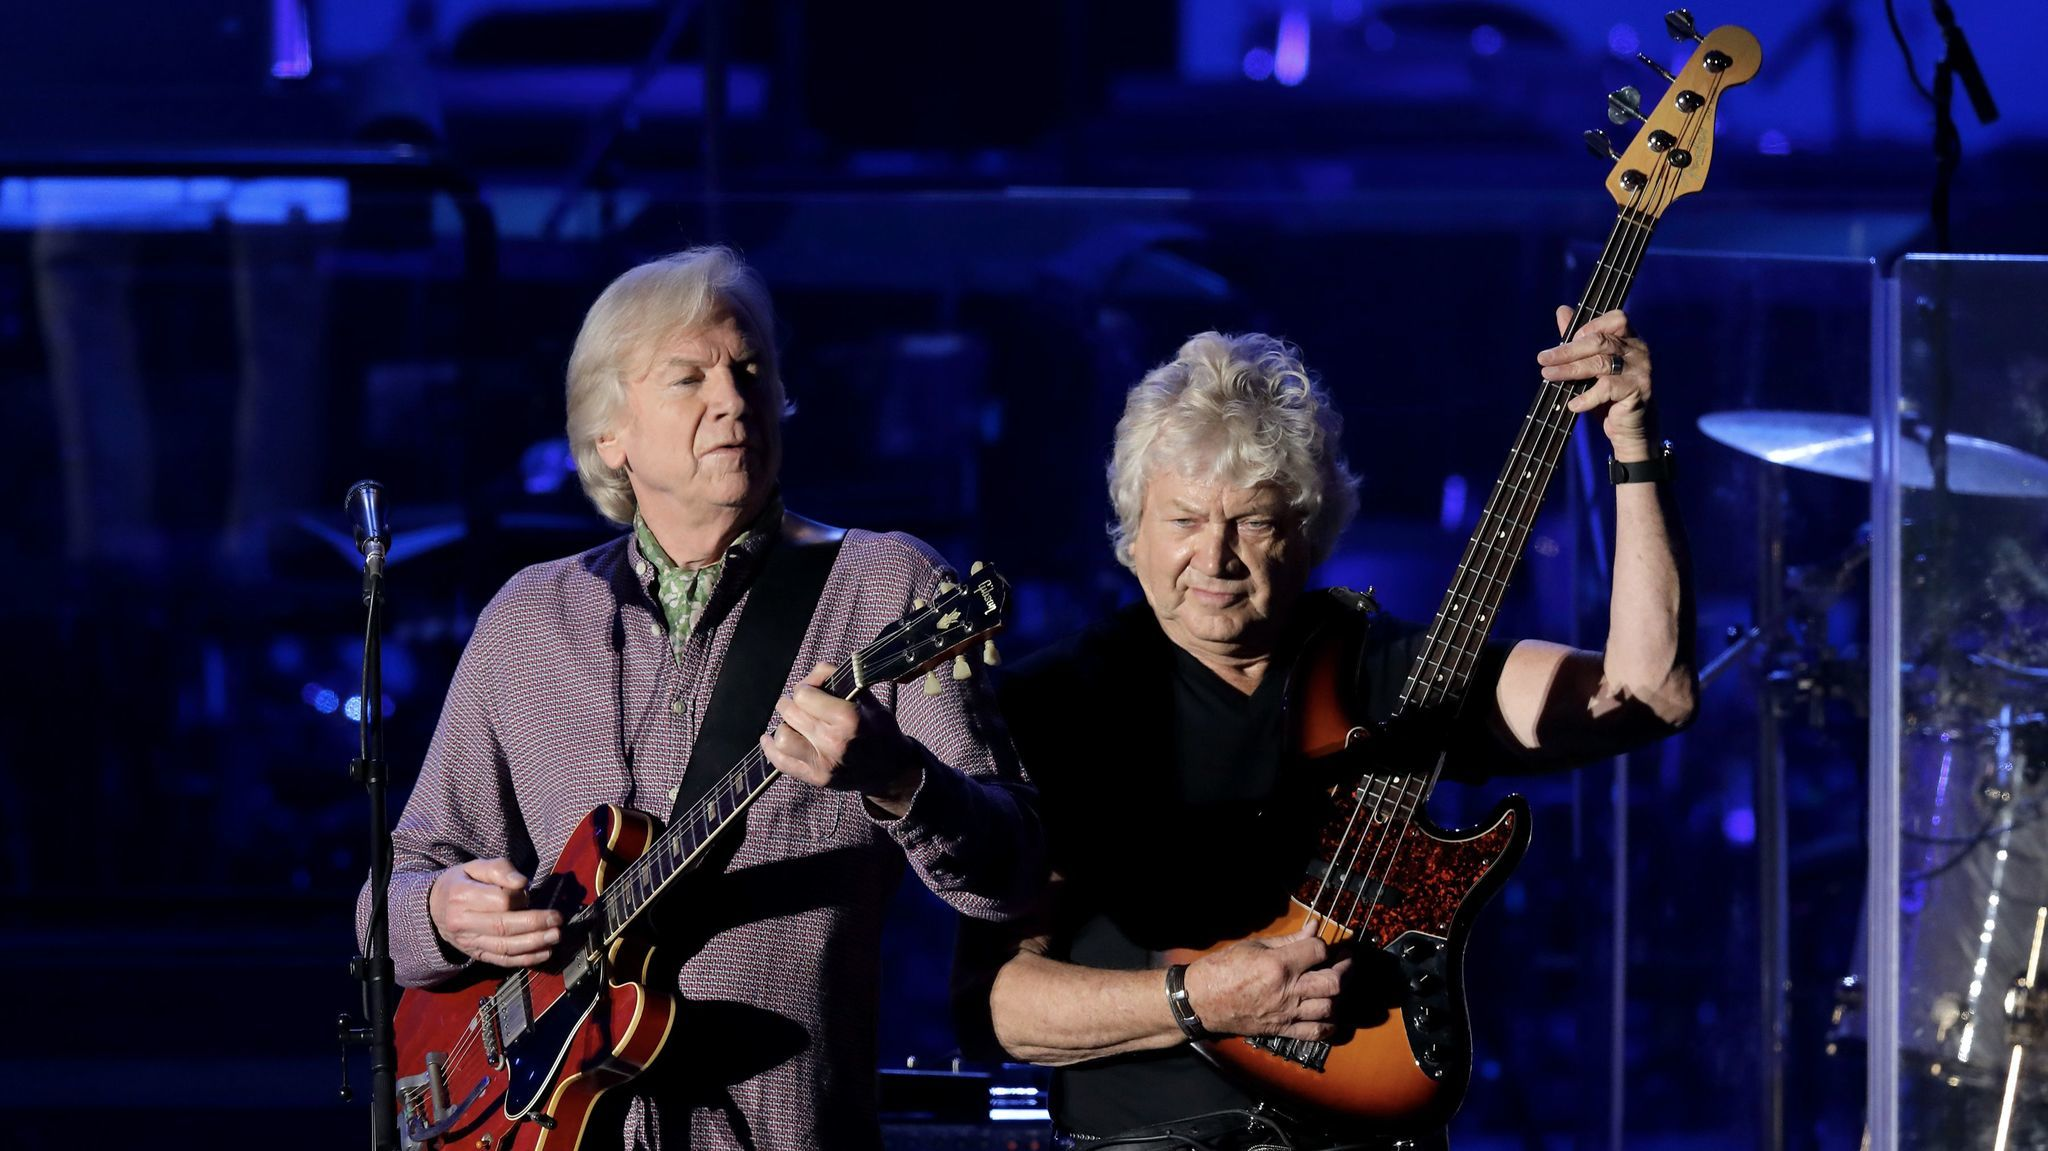 Justin Hayward and John Lodge of the Moody Blues.